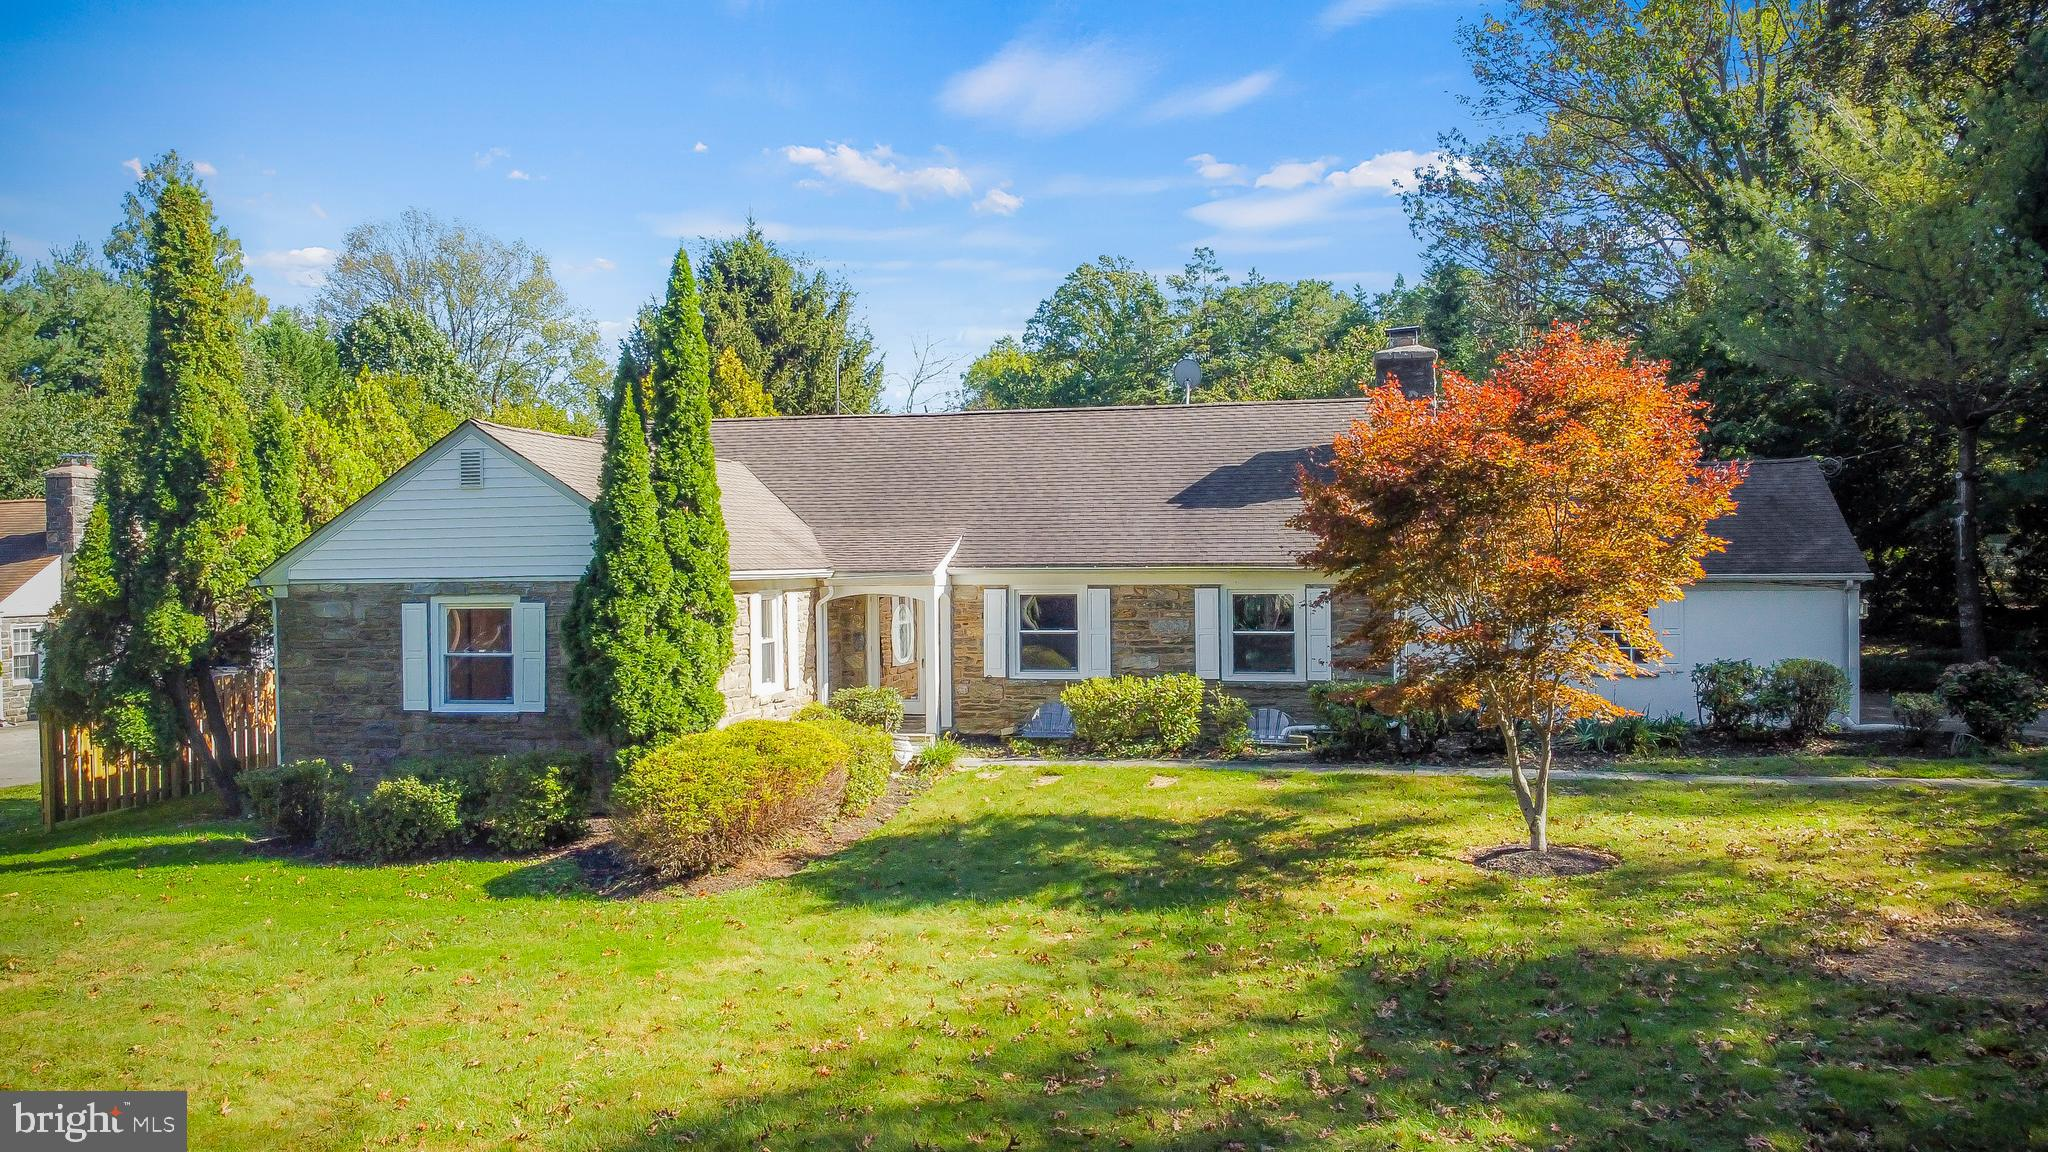 """Welcome home! Great opportunity to live in Gladwyne. Nice location and within walking distance to Gladwyne Village and. easy access to Center City. This classic Cape Cod style is situated on approximately .50 acres of beautiful trees and foliage. The convenient """"L"""" shaped driveway gives you convenience and easy access to Conshohocken State Road. Enter the foyer into a welcoming 2 story floor with gleaming hardwood floors throughout the entire home. The open floor plan leads you to the formal living room with plenty of windows, allowing a great amount of sunlight to drench the living room—a good-sized dining room with an open concept that will lead to the kitchen. The kitchen has plenty of wooden cabinets, beautiful new 2021 granite countertops, a gas stove as well as stainless-steel appliances. From the kitchen walk into a Cozy oversize sunroom with a great view to the rear fenced and private back yard. This room gives you extra space for indoor entertainment or quiet relaxation. Also, the main floor offers the convenience of three generous bedrooms two of which had their carpet replaced with new hardwood floors back in 2014. The new remodeled 2018 two bathrooms and the laundry room are completing the first floor. On the second floor, there are two other large size bedrooms that are ideal for kids or guests with a shared bathroom in the hall. Also in the hallway, is a large walk-in closet which provides tons of storage. The lower level is an unfinished basement that can be used for extra storage. There is also an attached two-car garage that can be used for parking or as convenient added storage. As for additional parking, there is plenty of space on the driveway. All this in award-winning Lower Merion schools. Come and see this beautiful home before it sells. Book your appointment today!"""